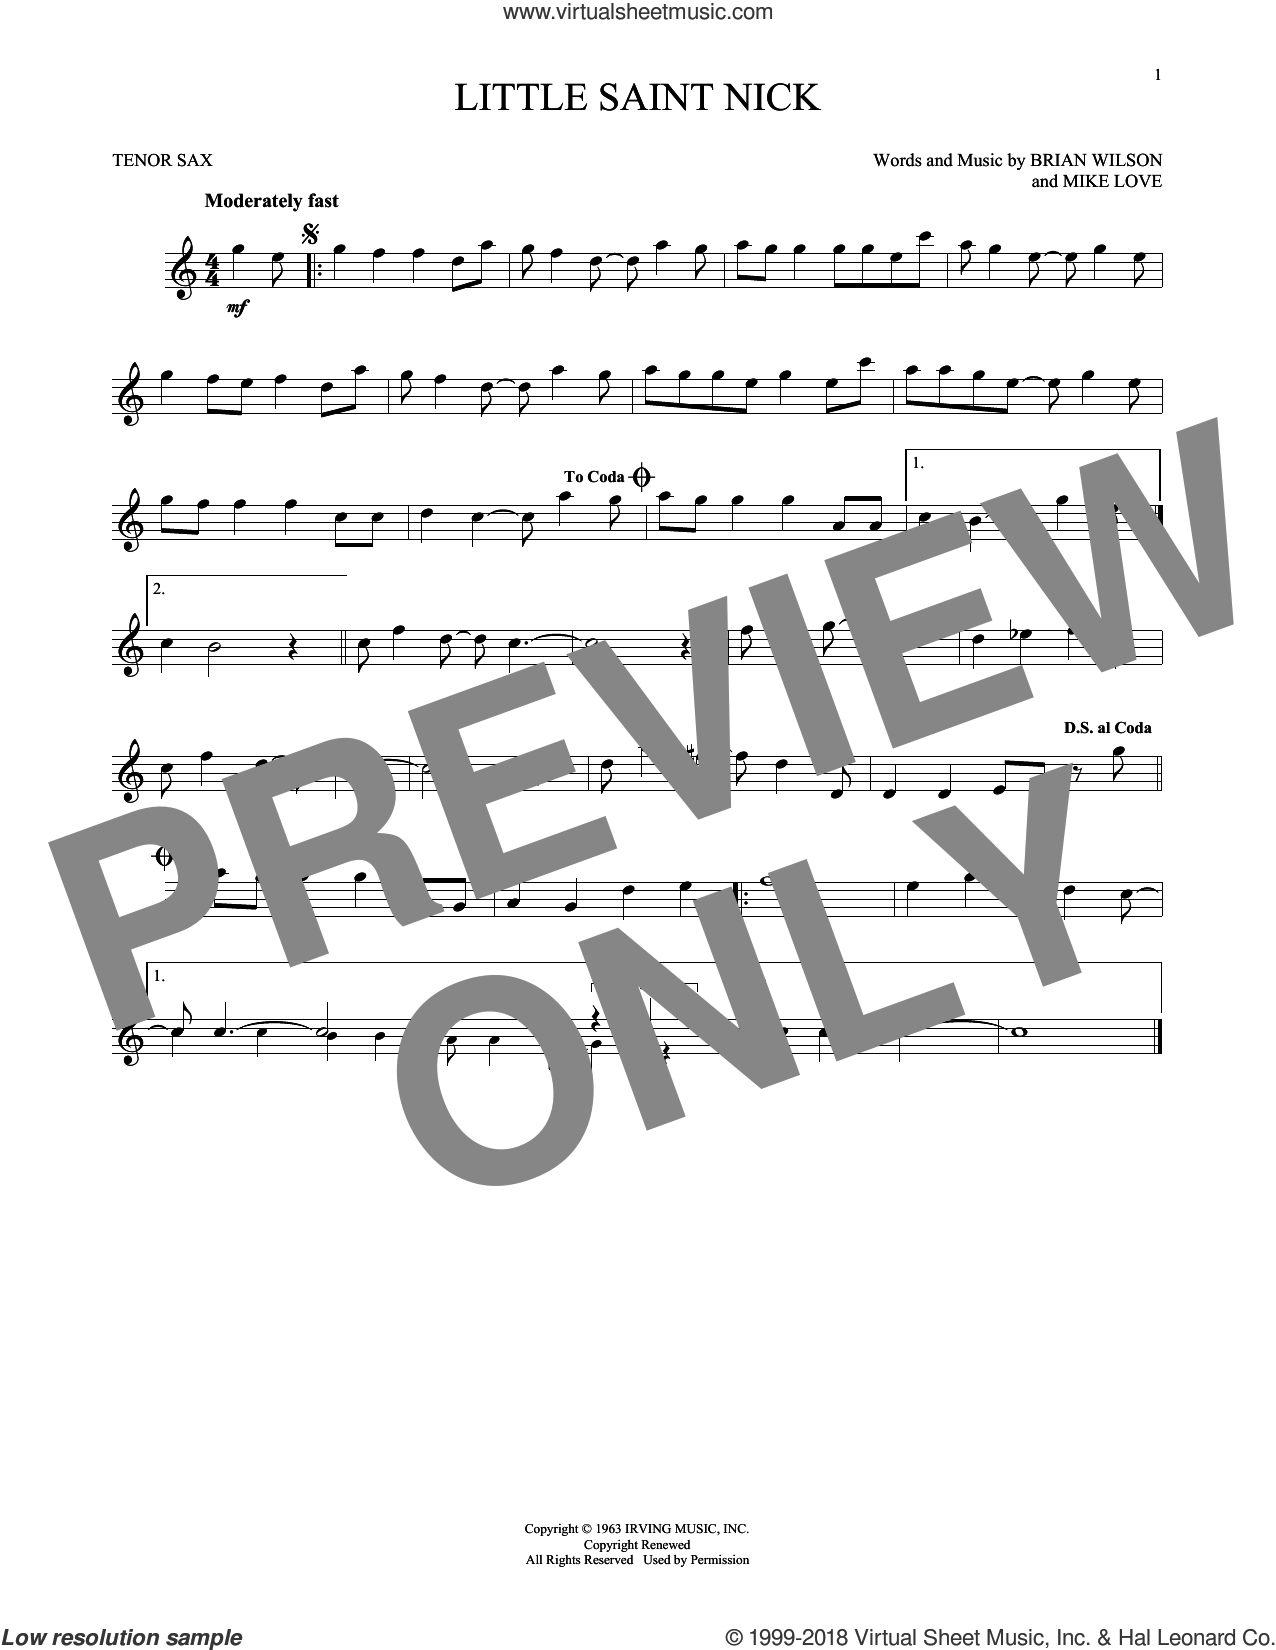 Little Saint Nick sheet music for tenor saxophone solo by The Beach Boys, Brian Wilson and Mike Love, intermediate skill level